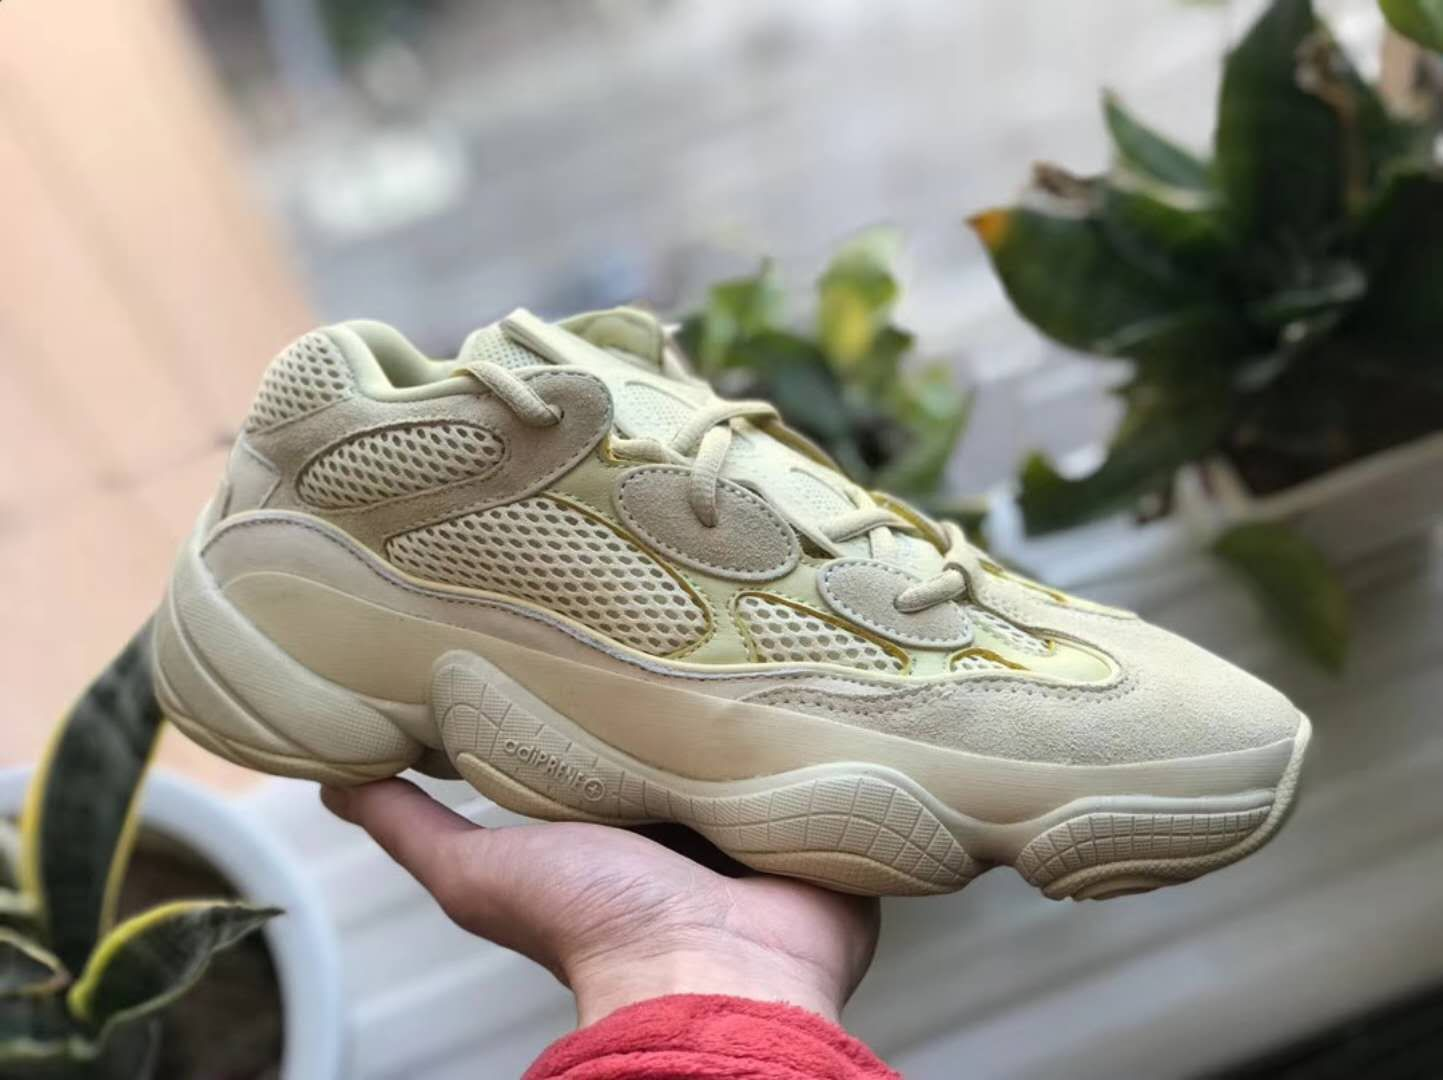 b4f19037b42 Yeezy Desert Rat 500 SUPER MOON YELLOW